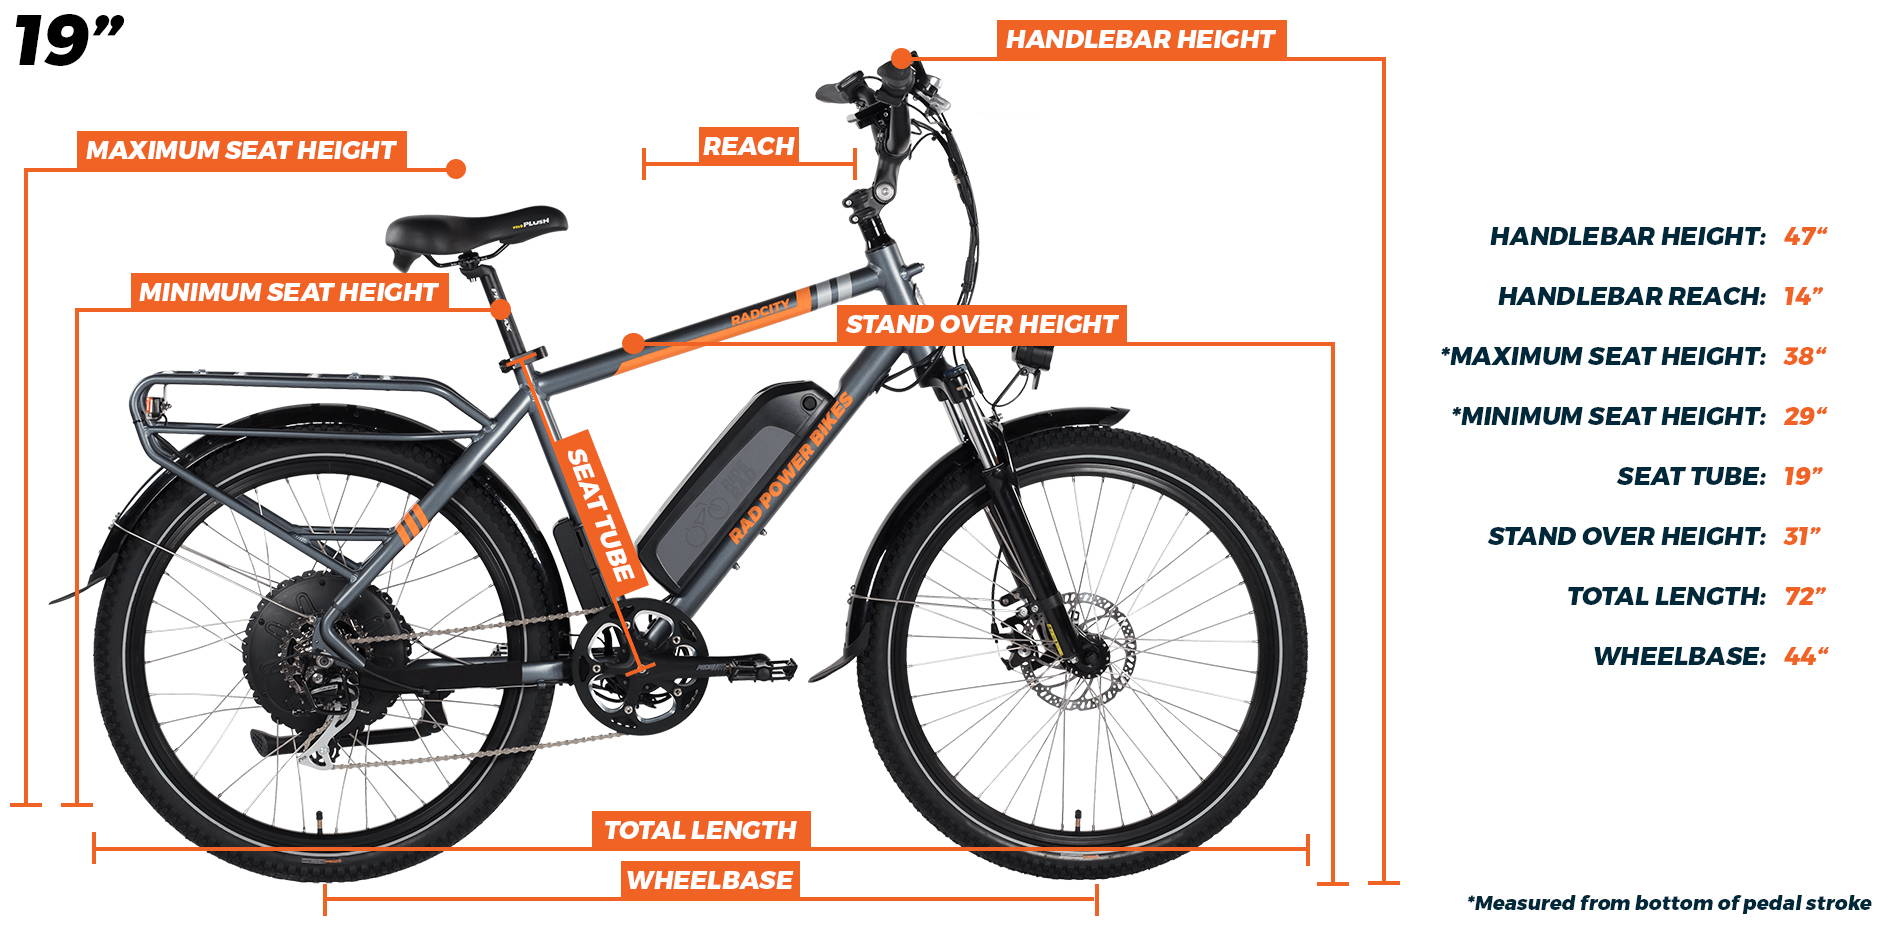 Rad Bikes Bike 2019 Power Electric Commuter RadCity qnxU8aI81w